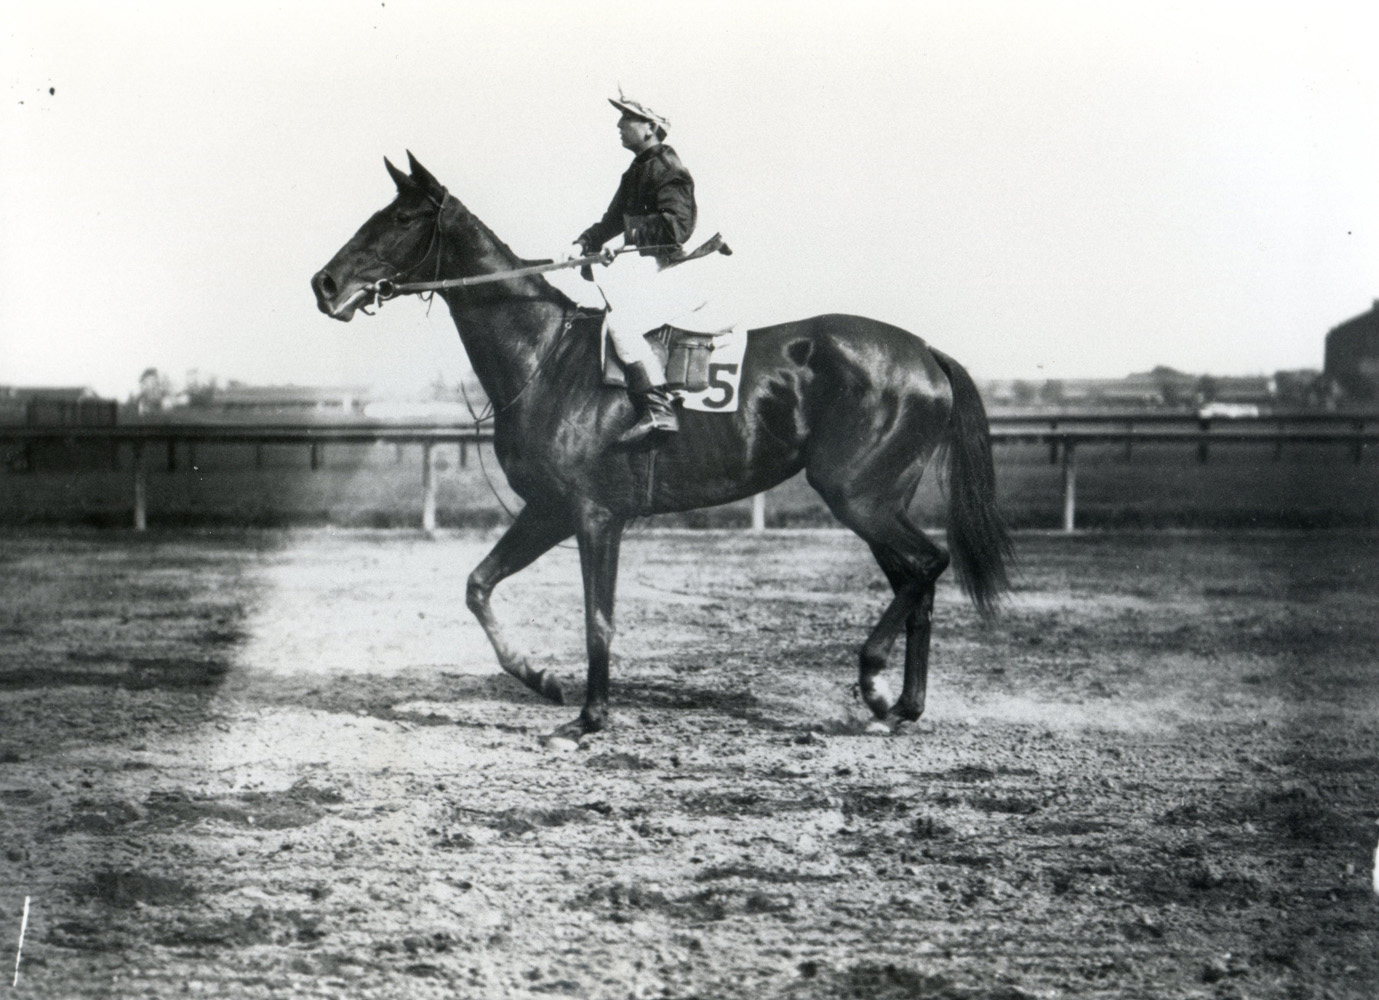 Walter Miller and Whimsical (Keeneland Library Cook Collection/Museum Collection)